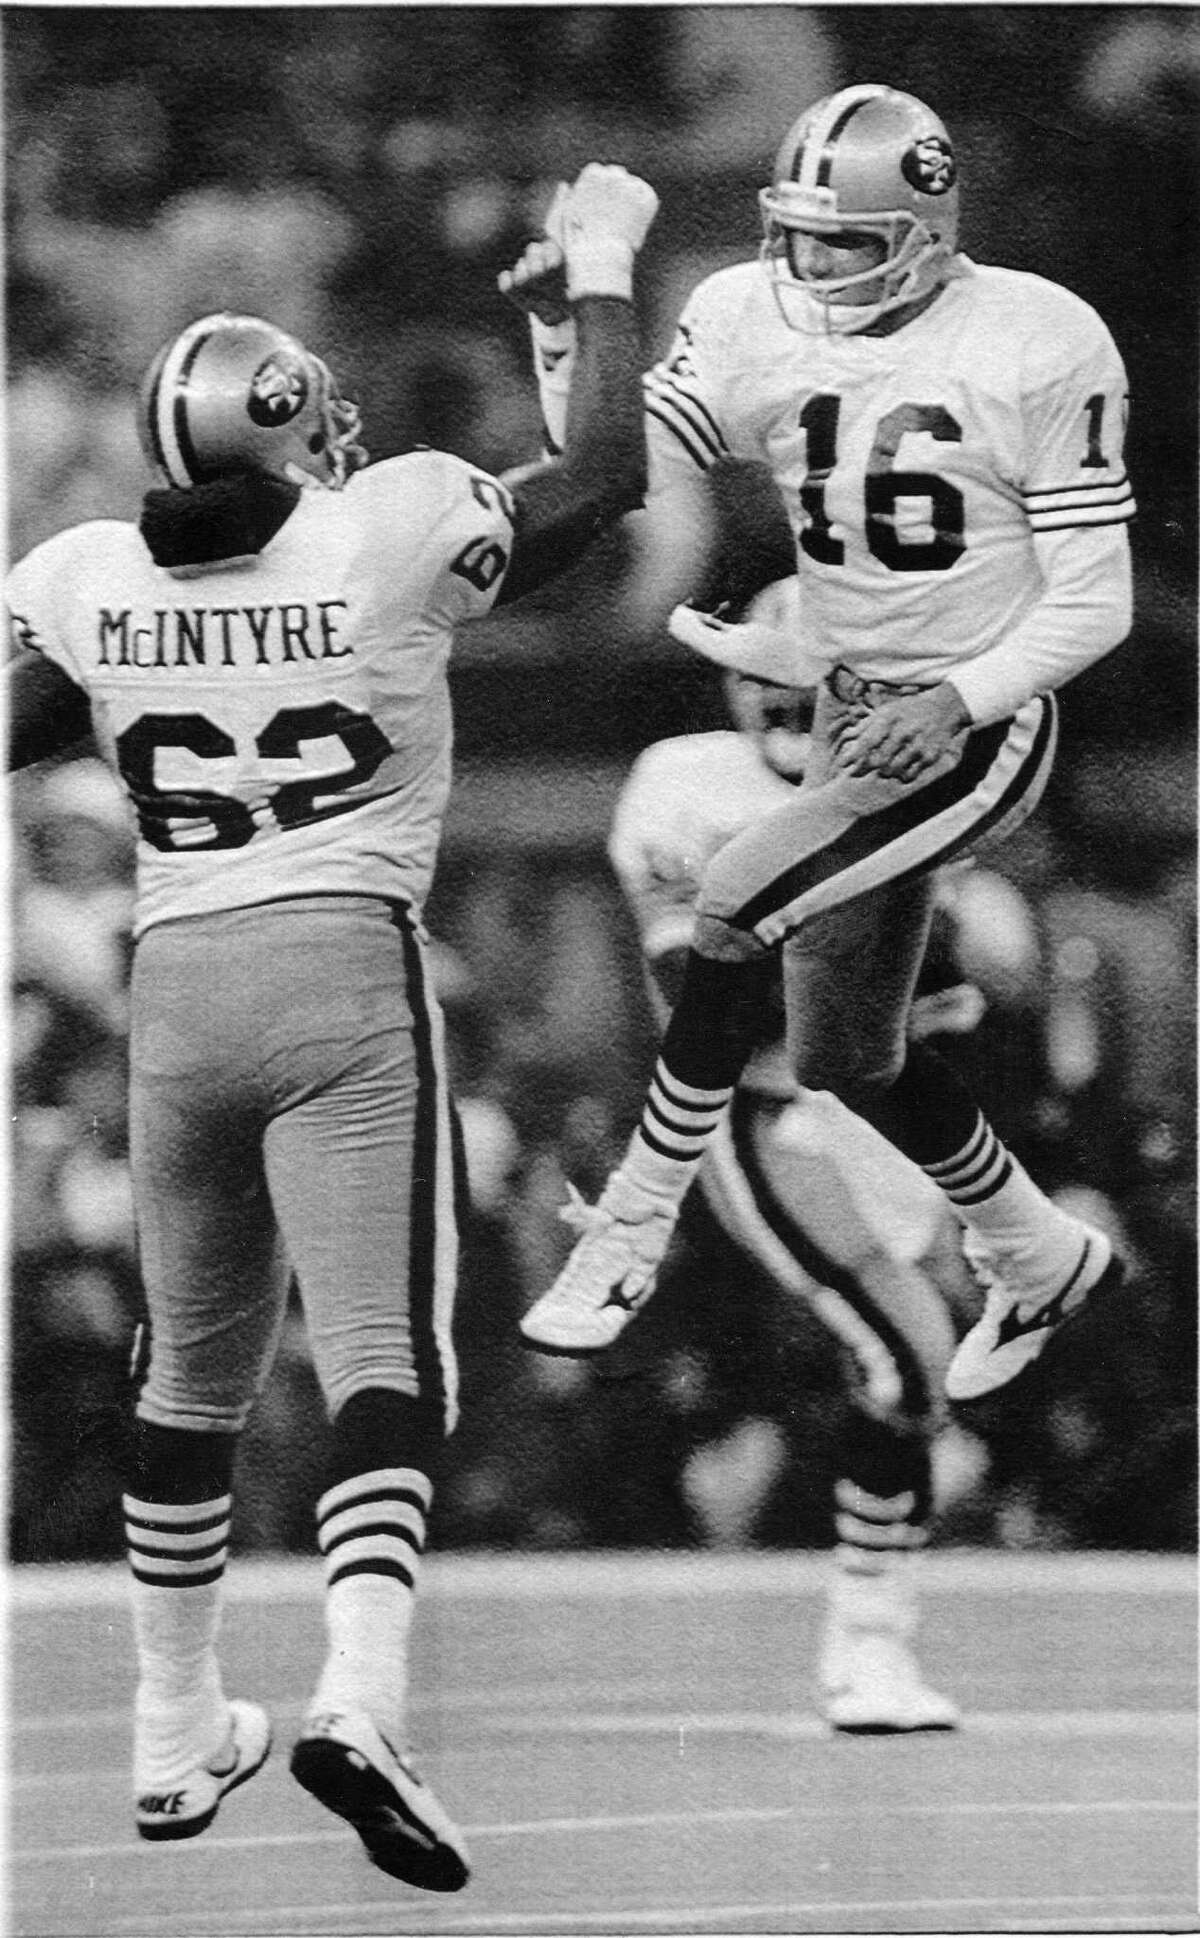 Joe Montana celebrates after a touchdown with 49ers teammate Guy McIntyre during Super Bowl XXIV at the Superdome in New Orleans on Jan. 29, 1990.